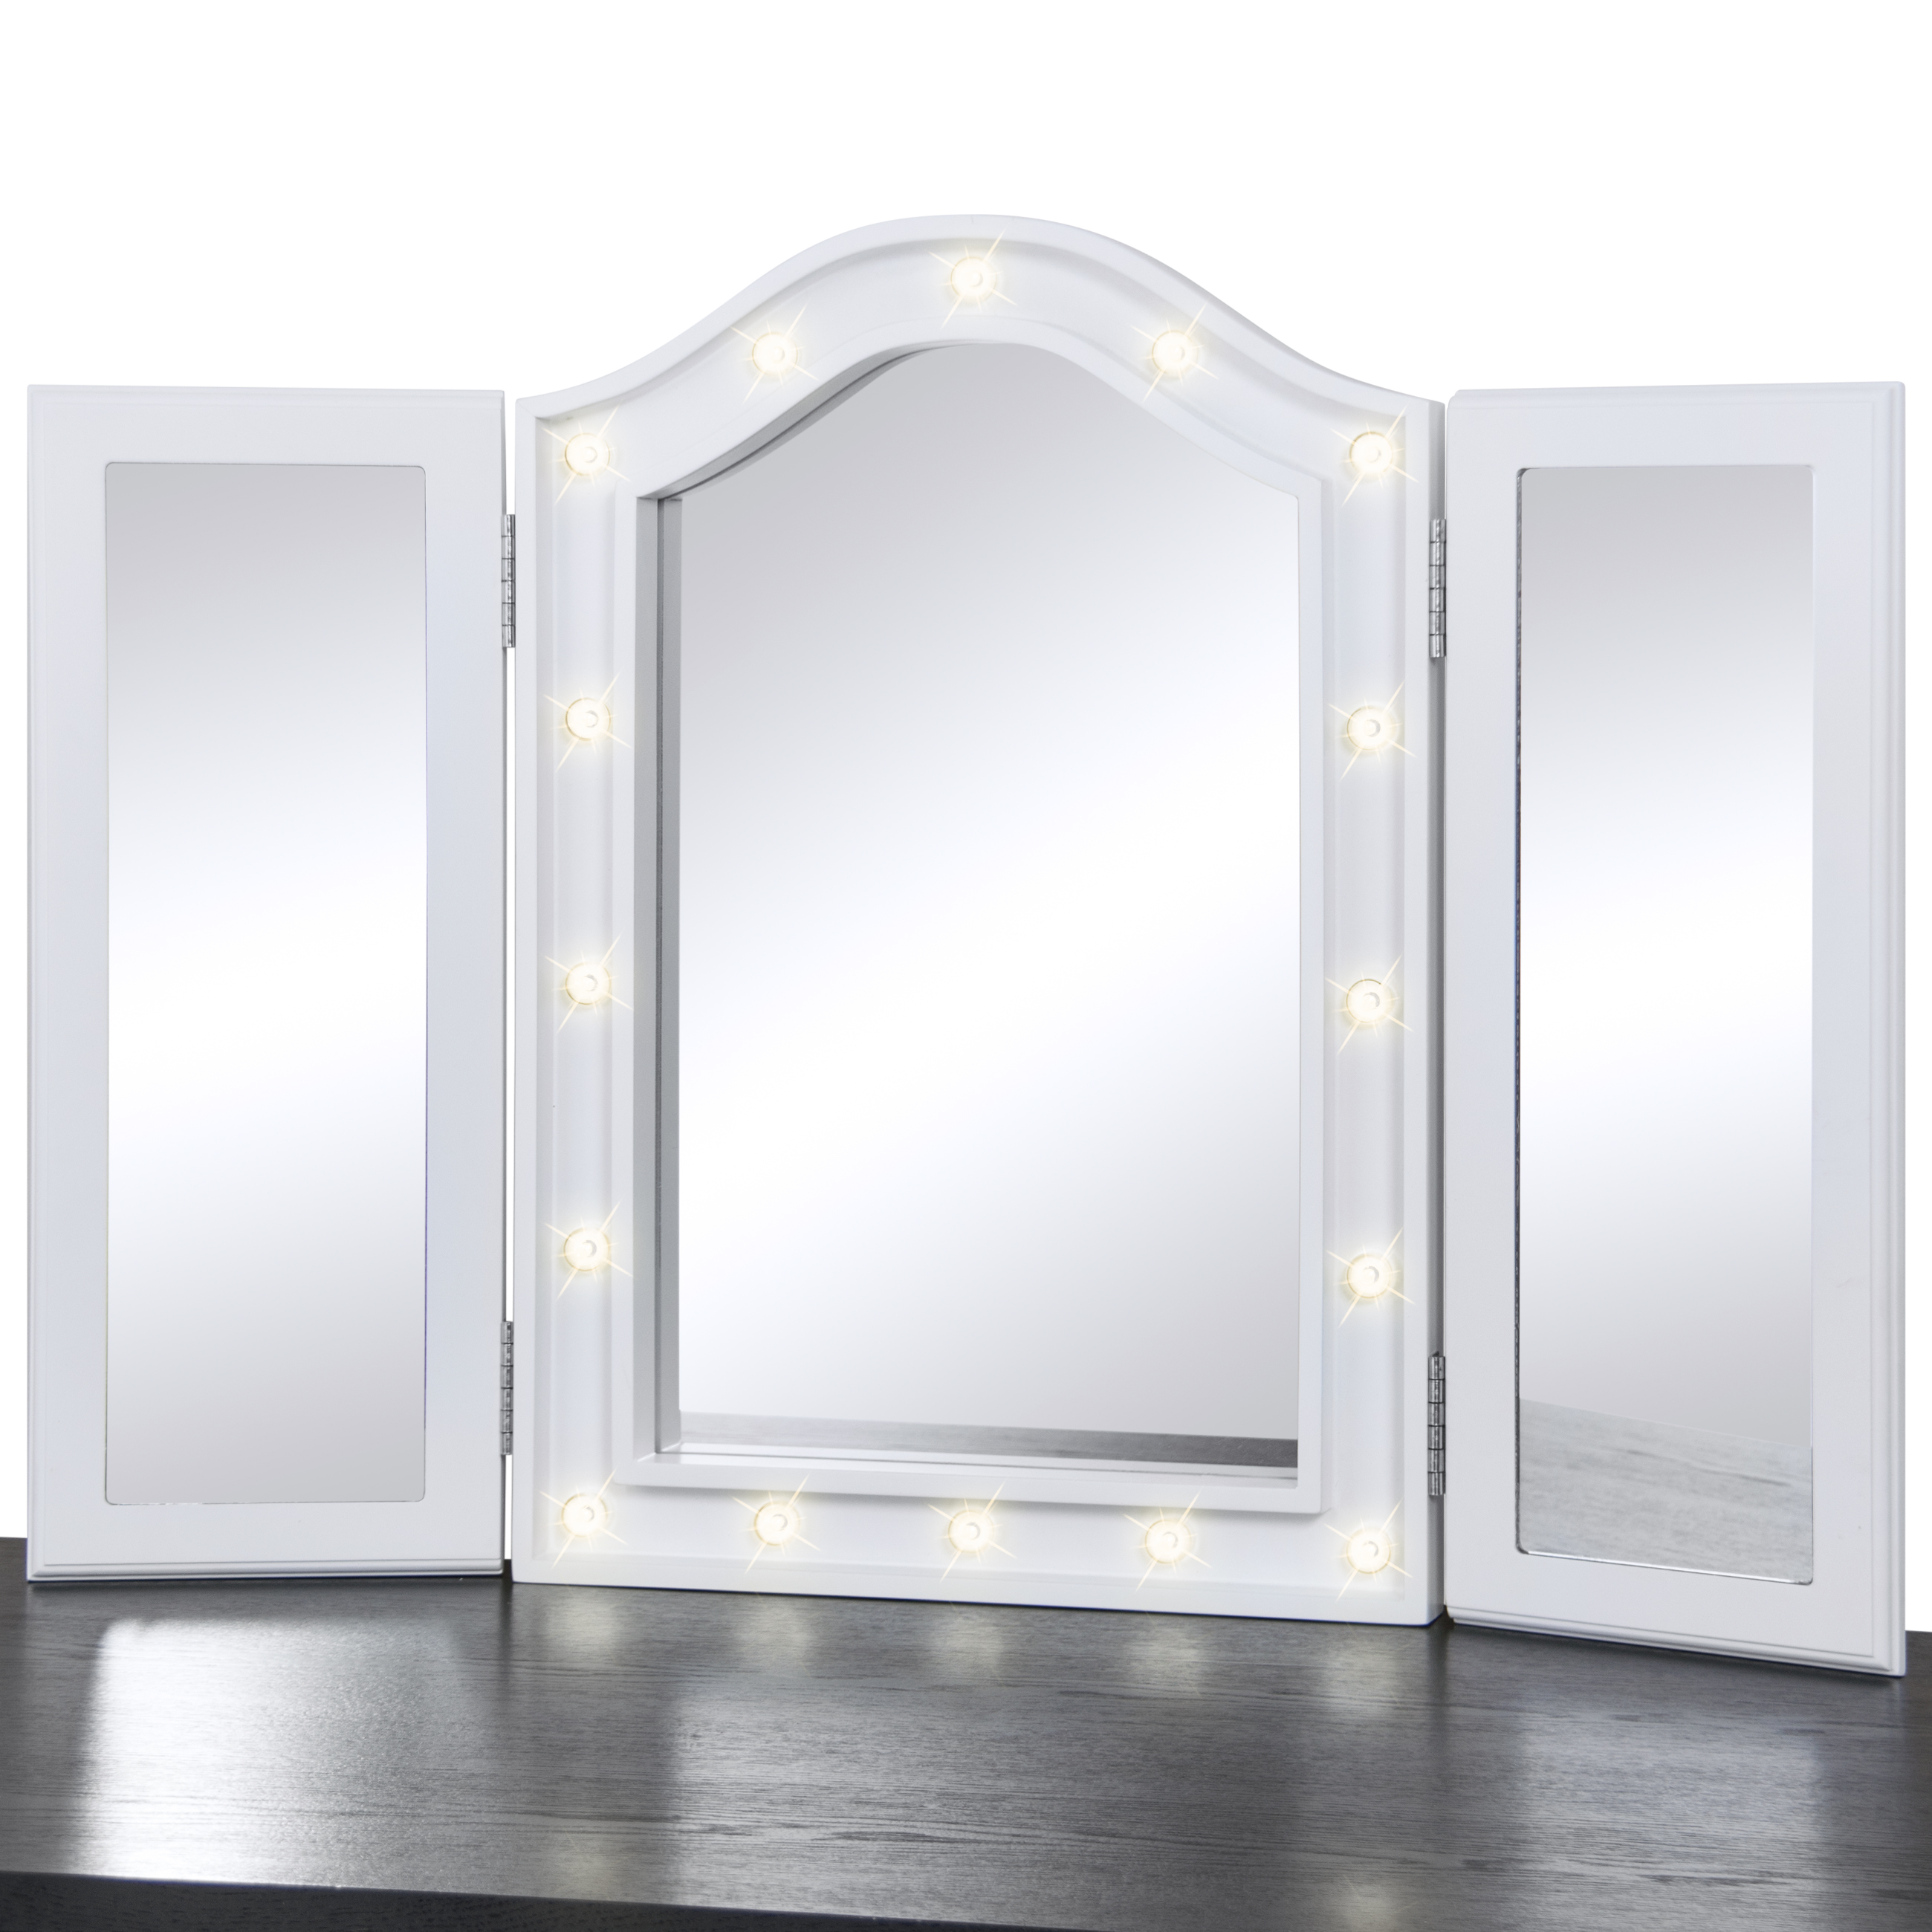 Best Choice Products Lighted Tabletop Tri-Fold Vanity Mirror W  LED Lights by